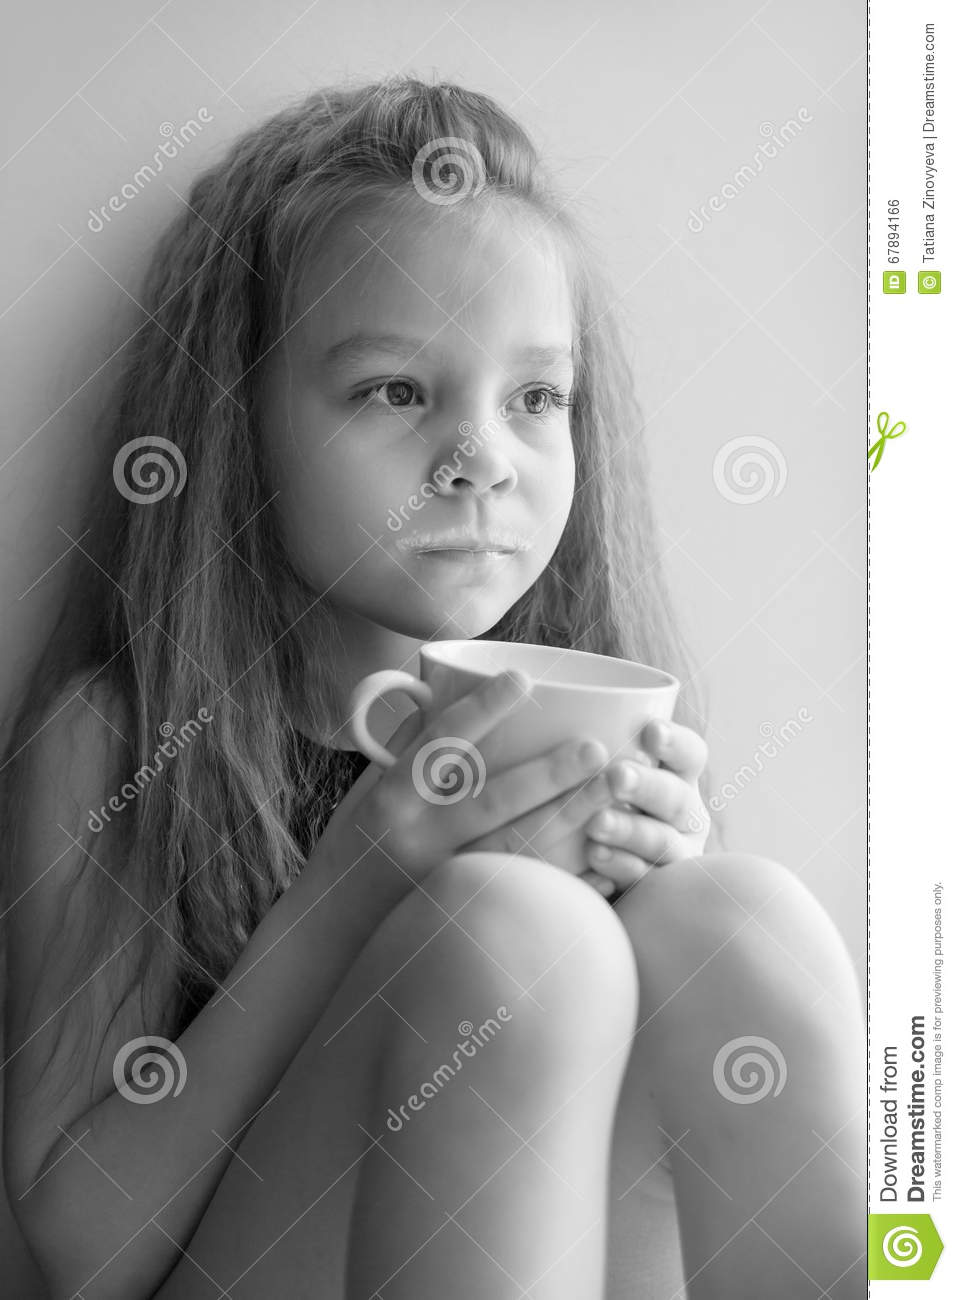 Little girl with a mug of hot milk black and white portrait